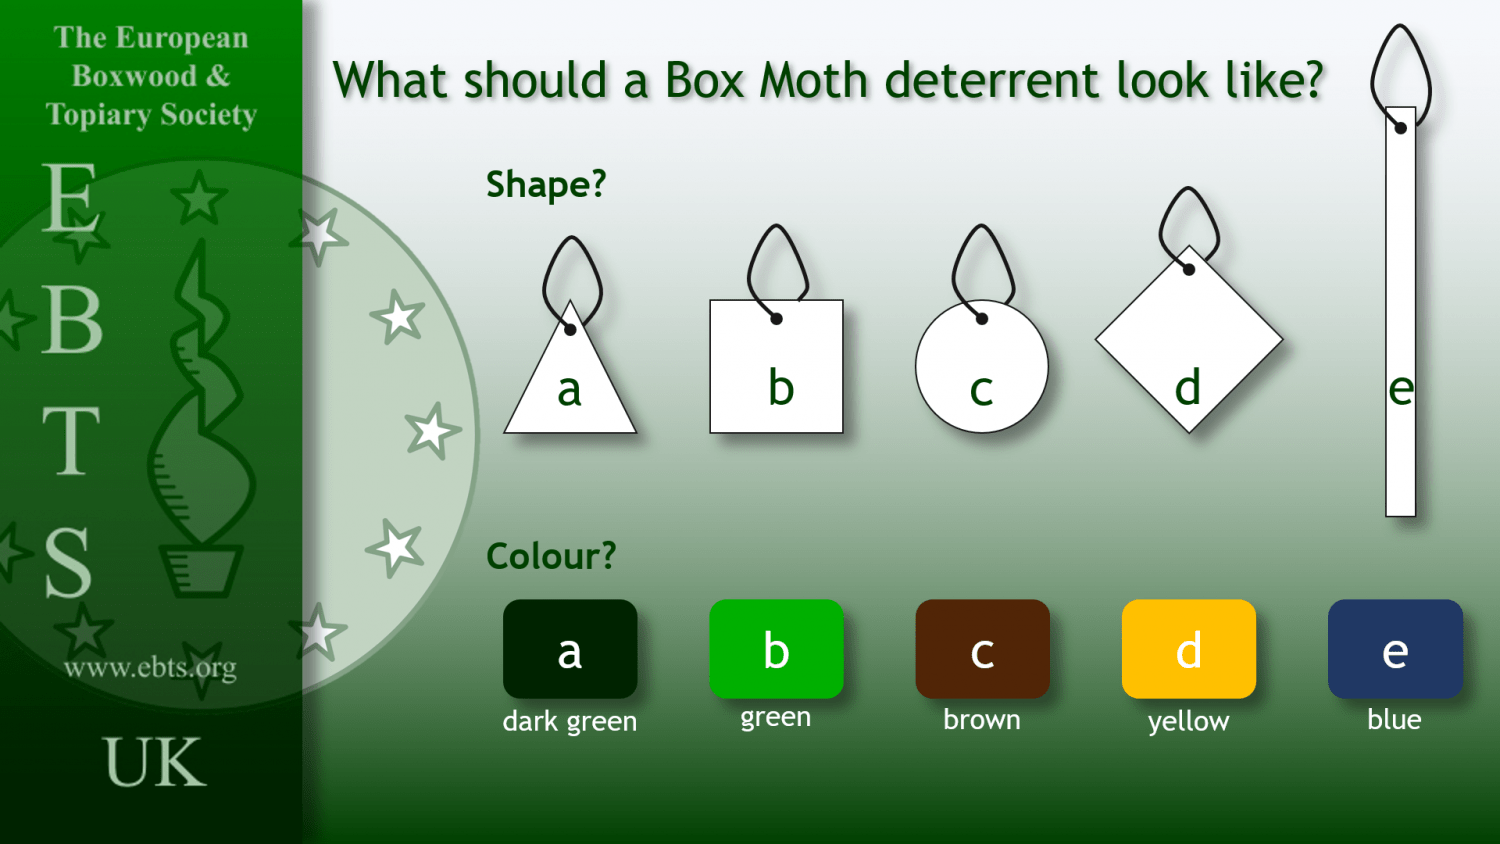 What should a Box Moth deterrent look like?